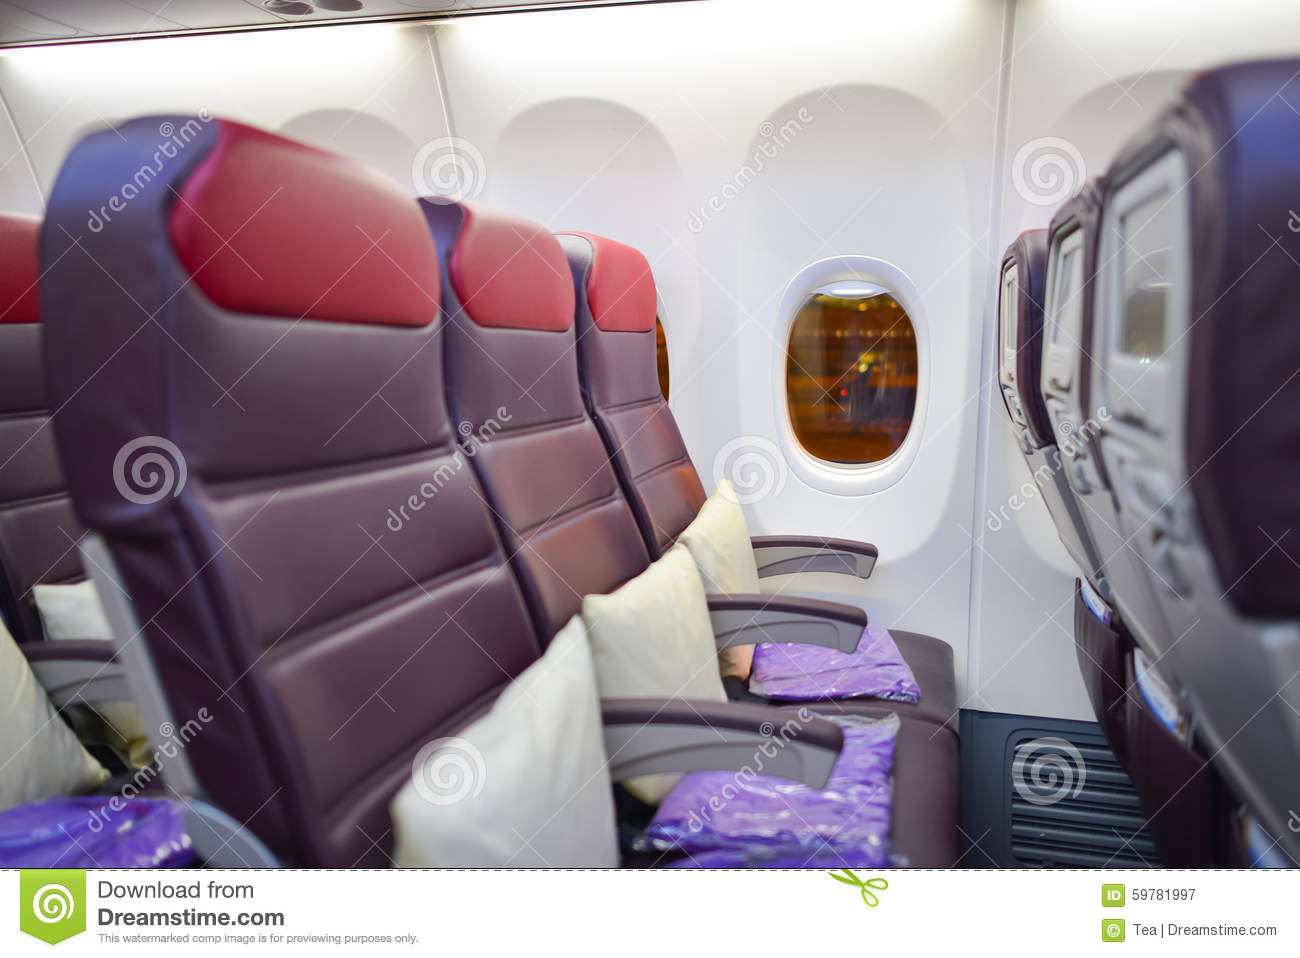 Malaysisk flygbolagBoeing 737 inre